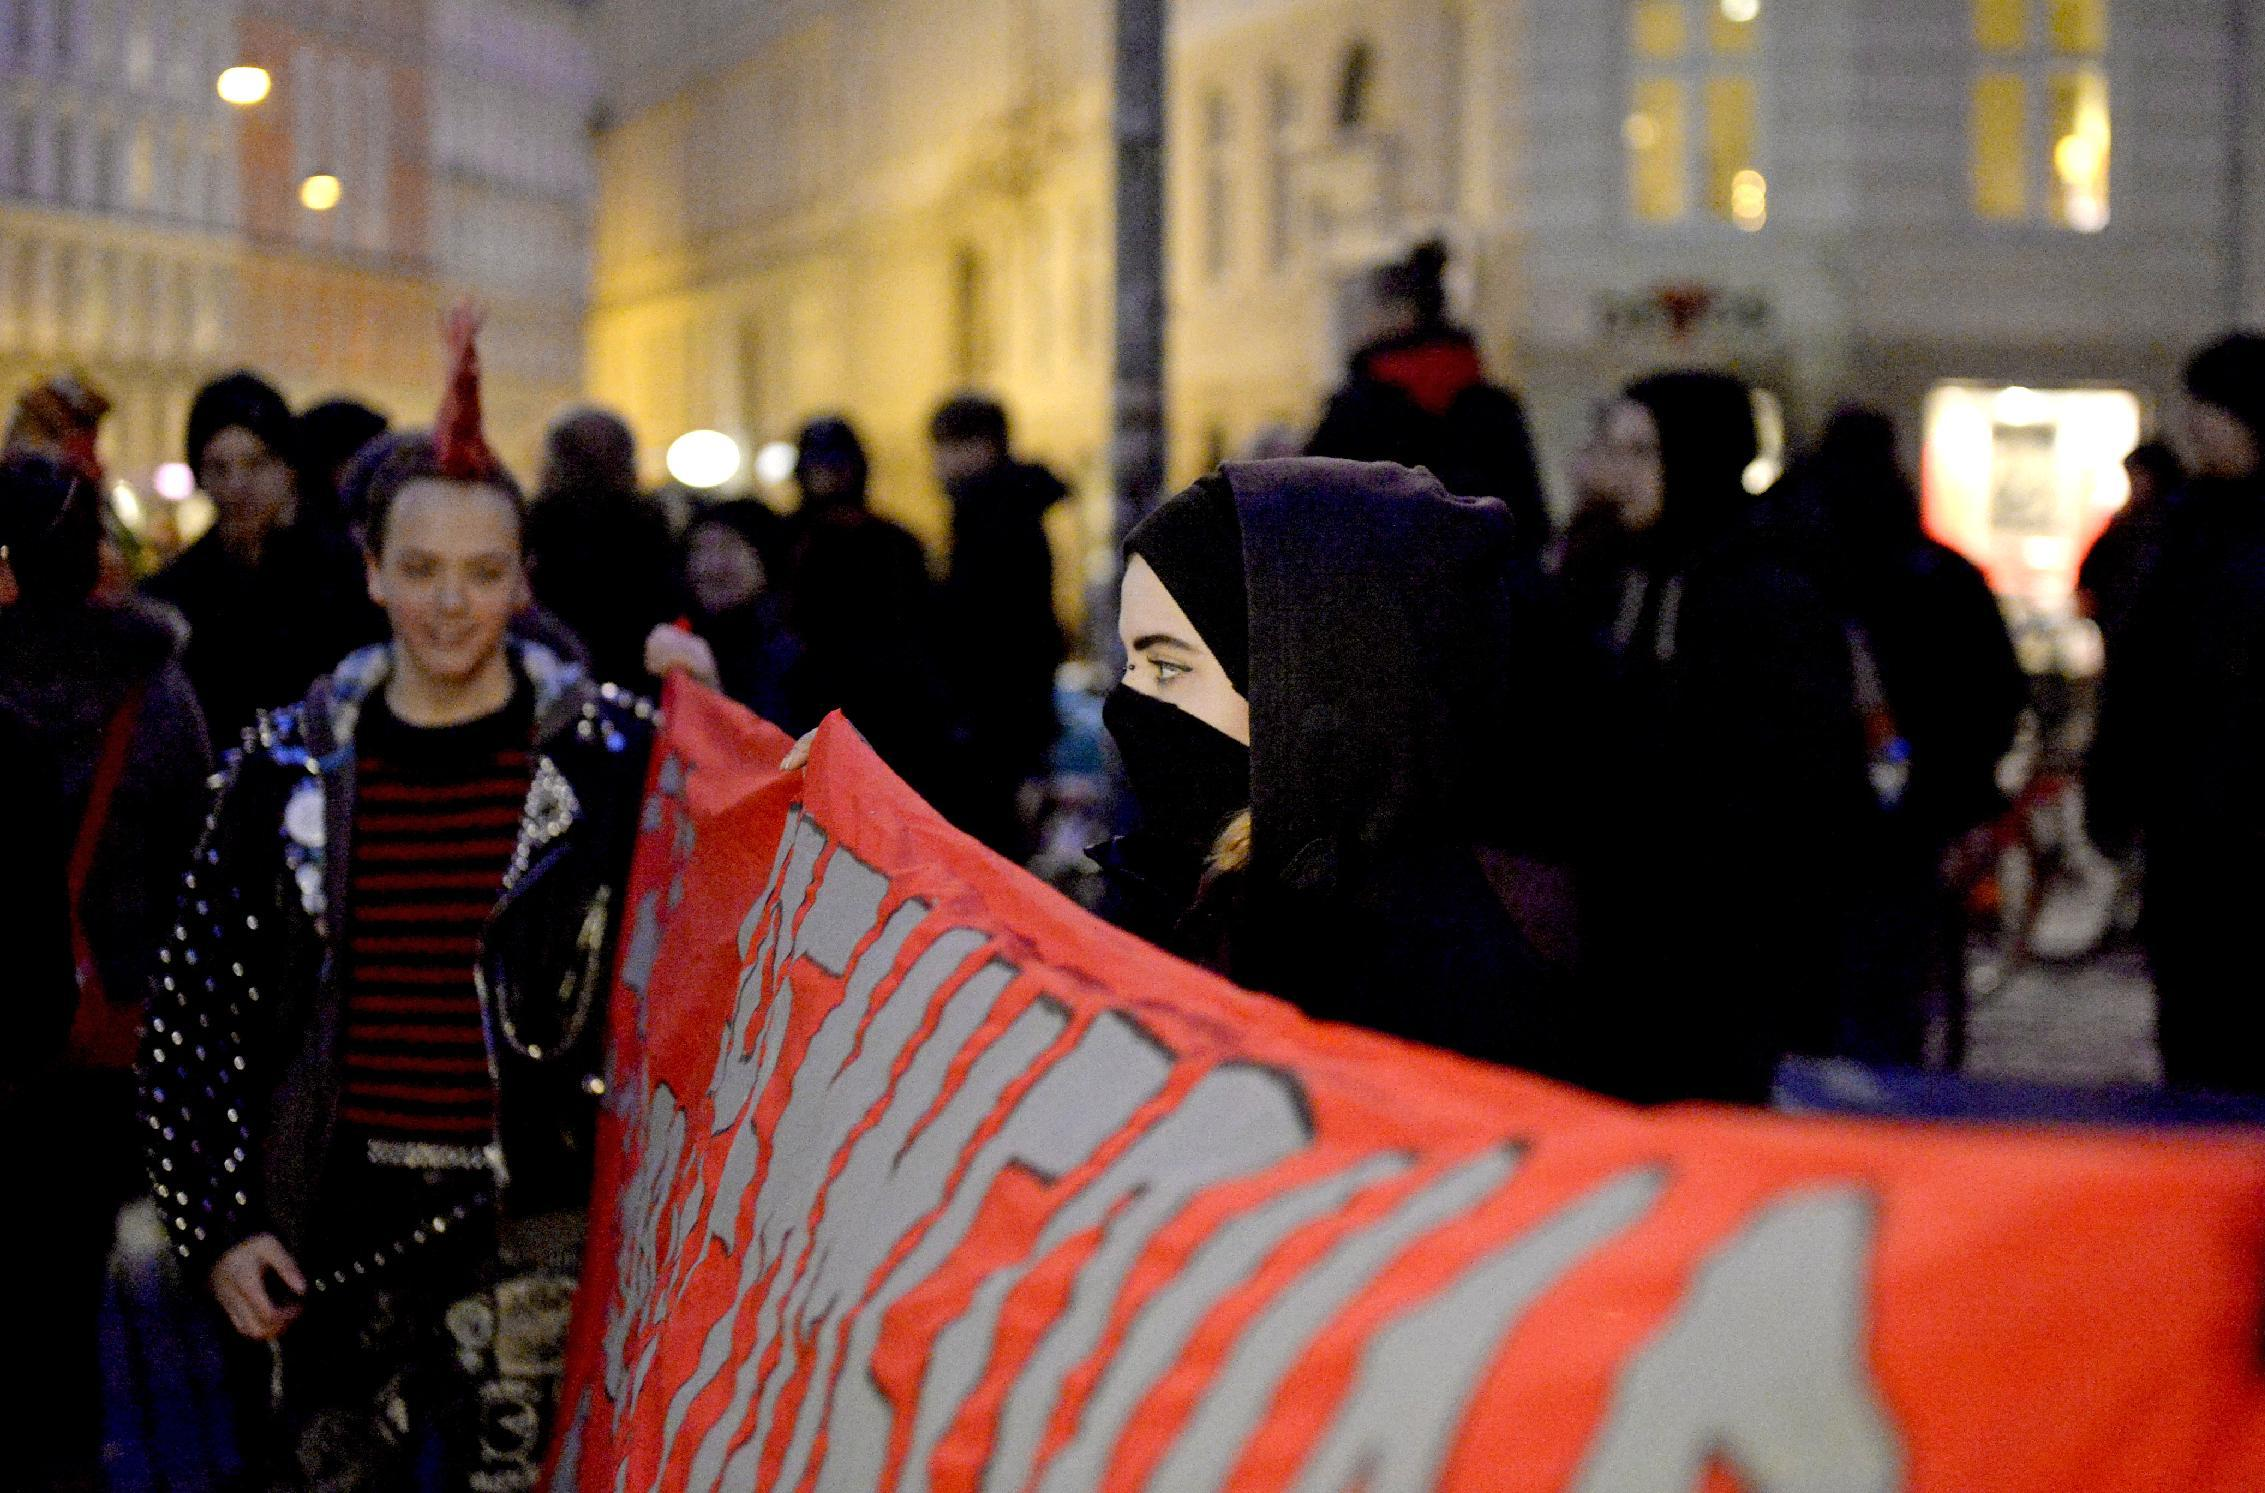 Anti-PEGIDA Denmark protesters hold a counter demonstration in Copenhagen on January 19, 2015 (AFP Photo/Christian Liliendahl)